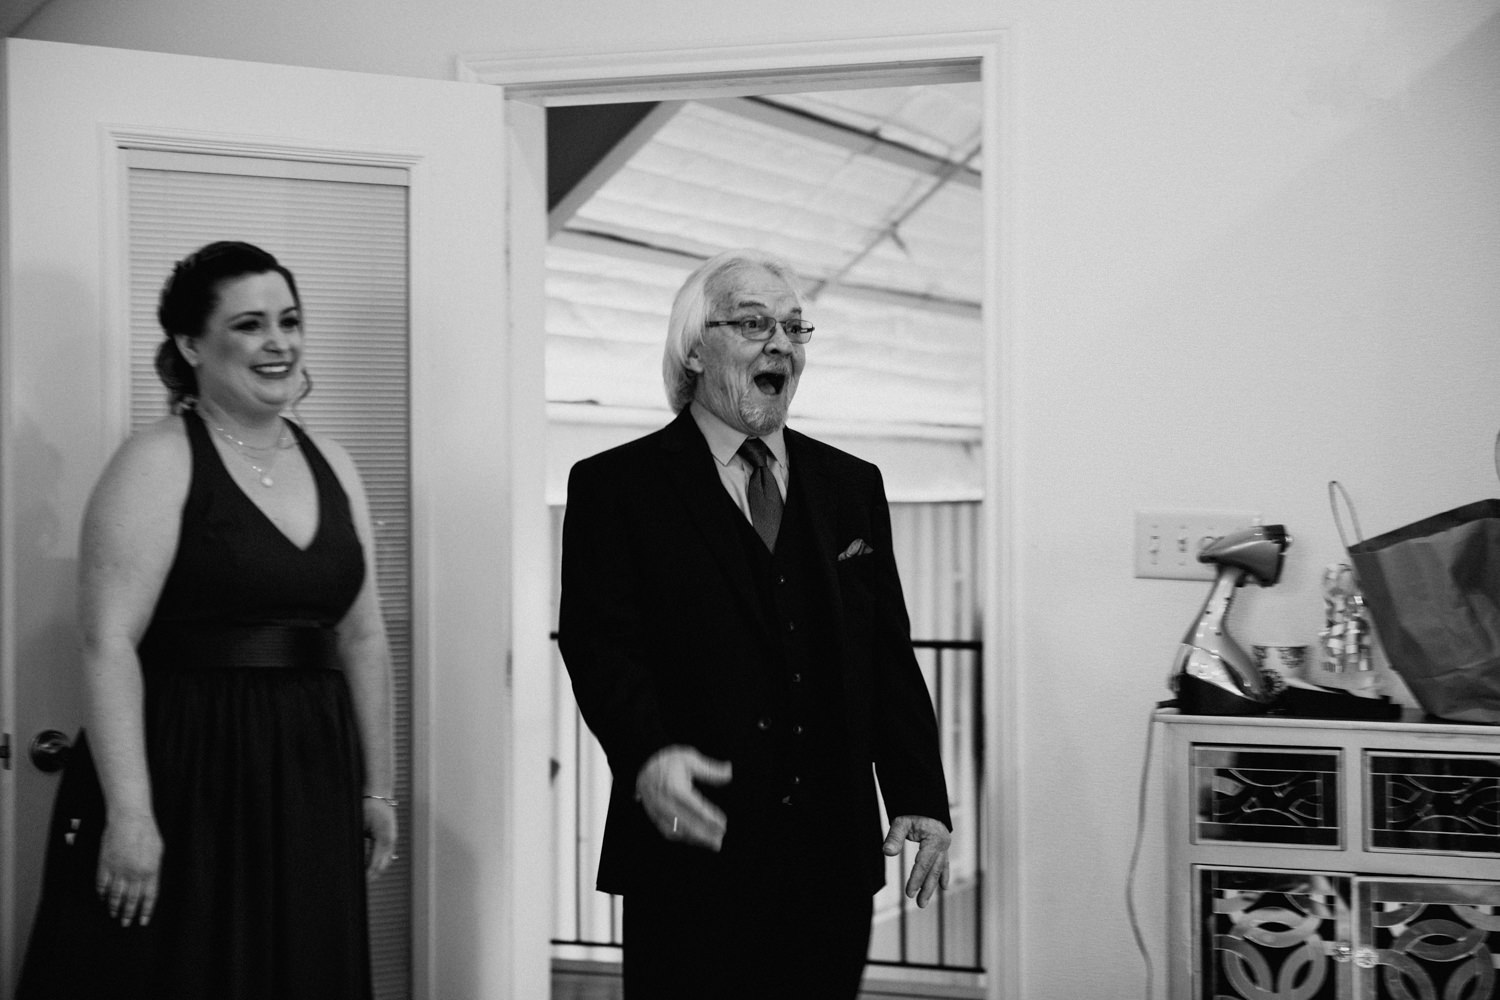 Father reacts to seeing his daughter at her wedding